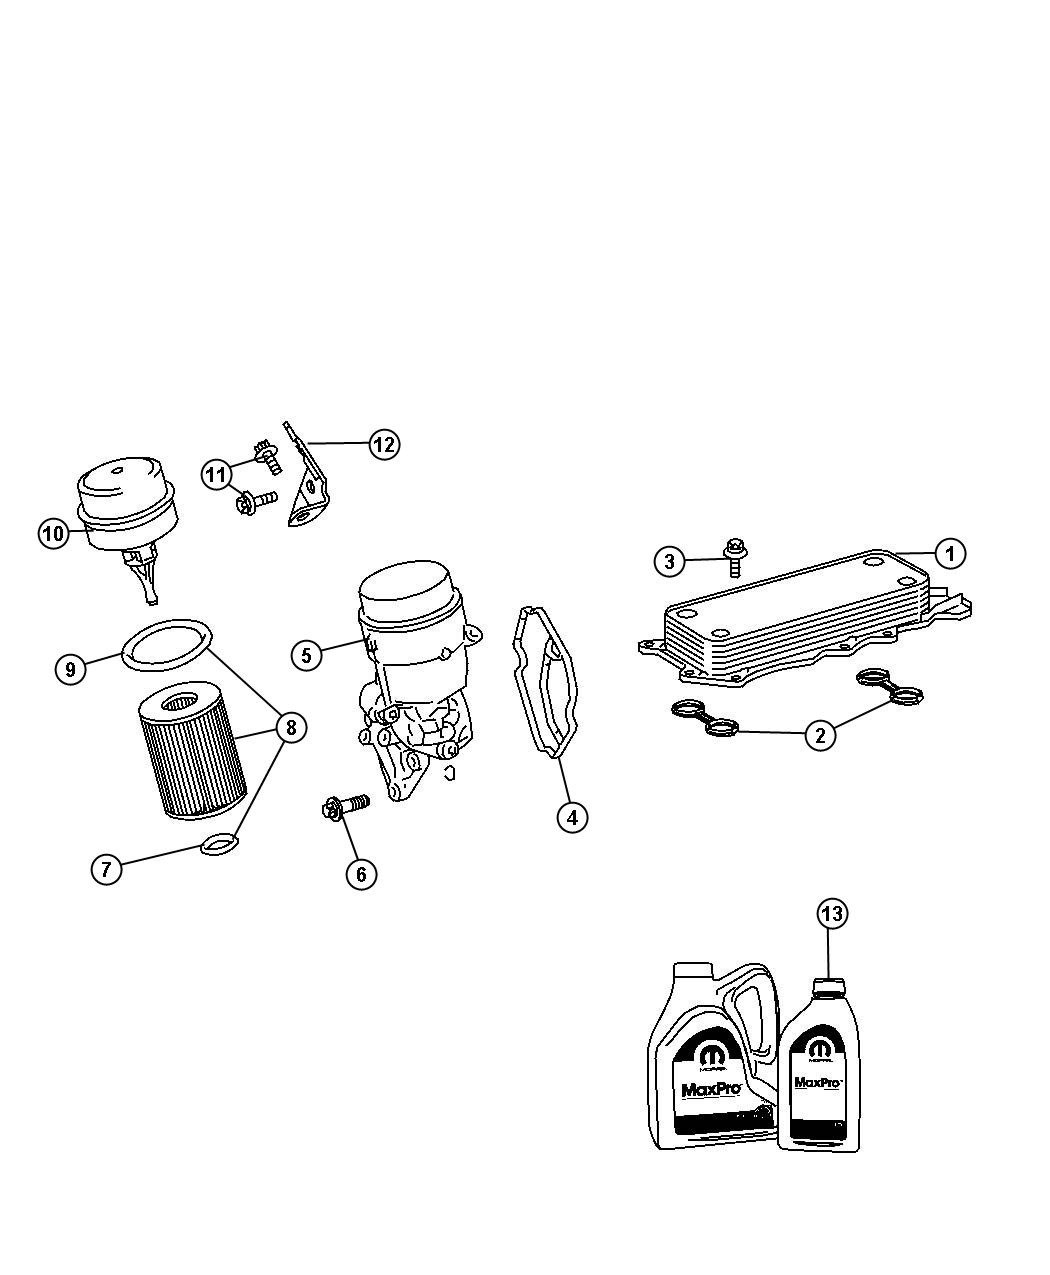 Engine Oil Filter And Adapter [3.0L V6 Turbo Diesel Engine]. Diagram